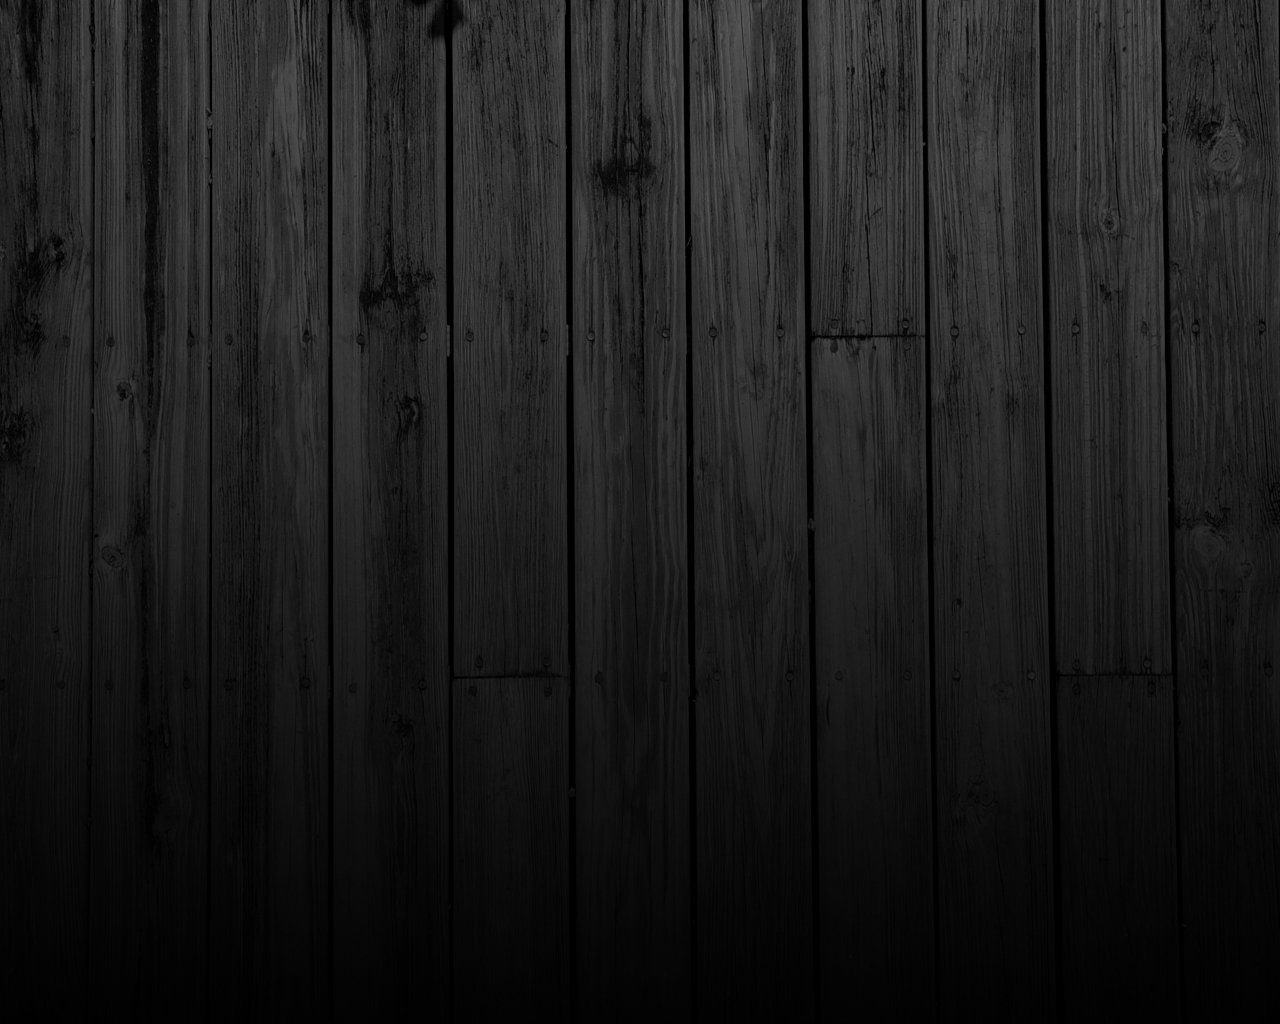 Dark Wood Desktop Wallpaper Wallpapersafari